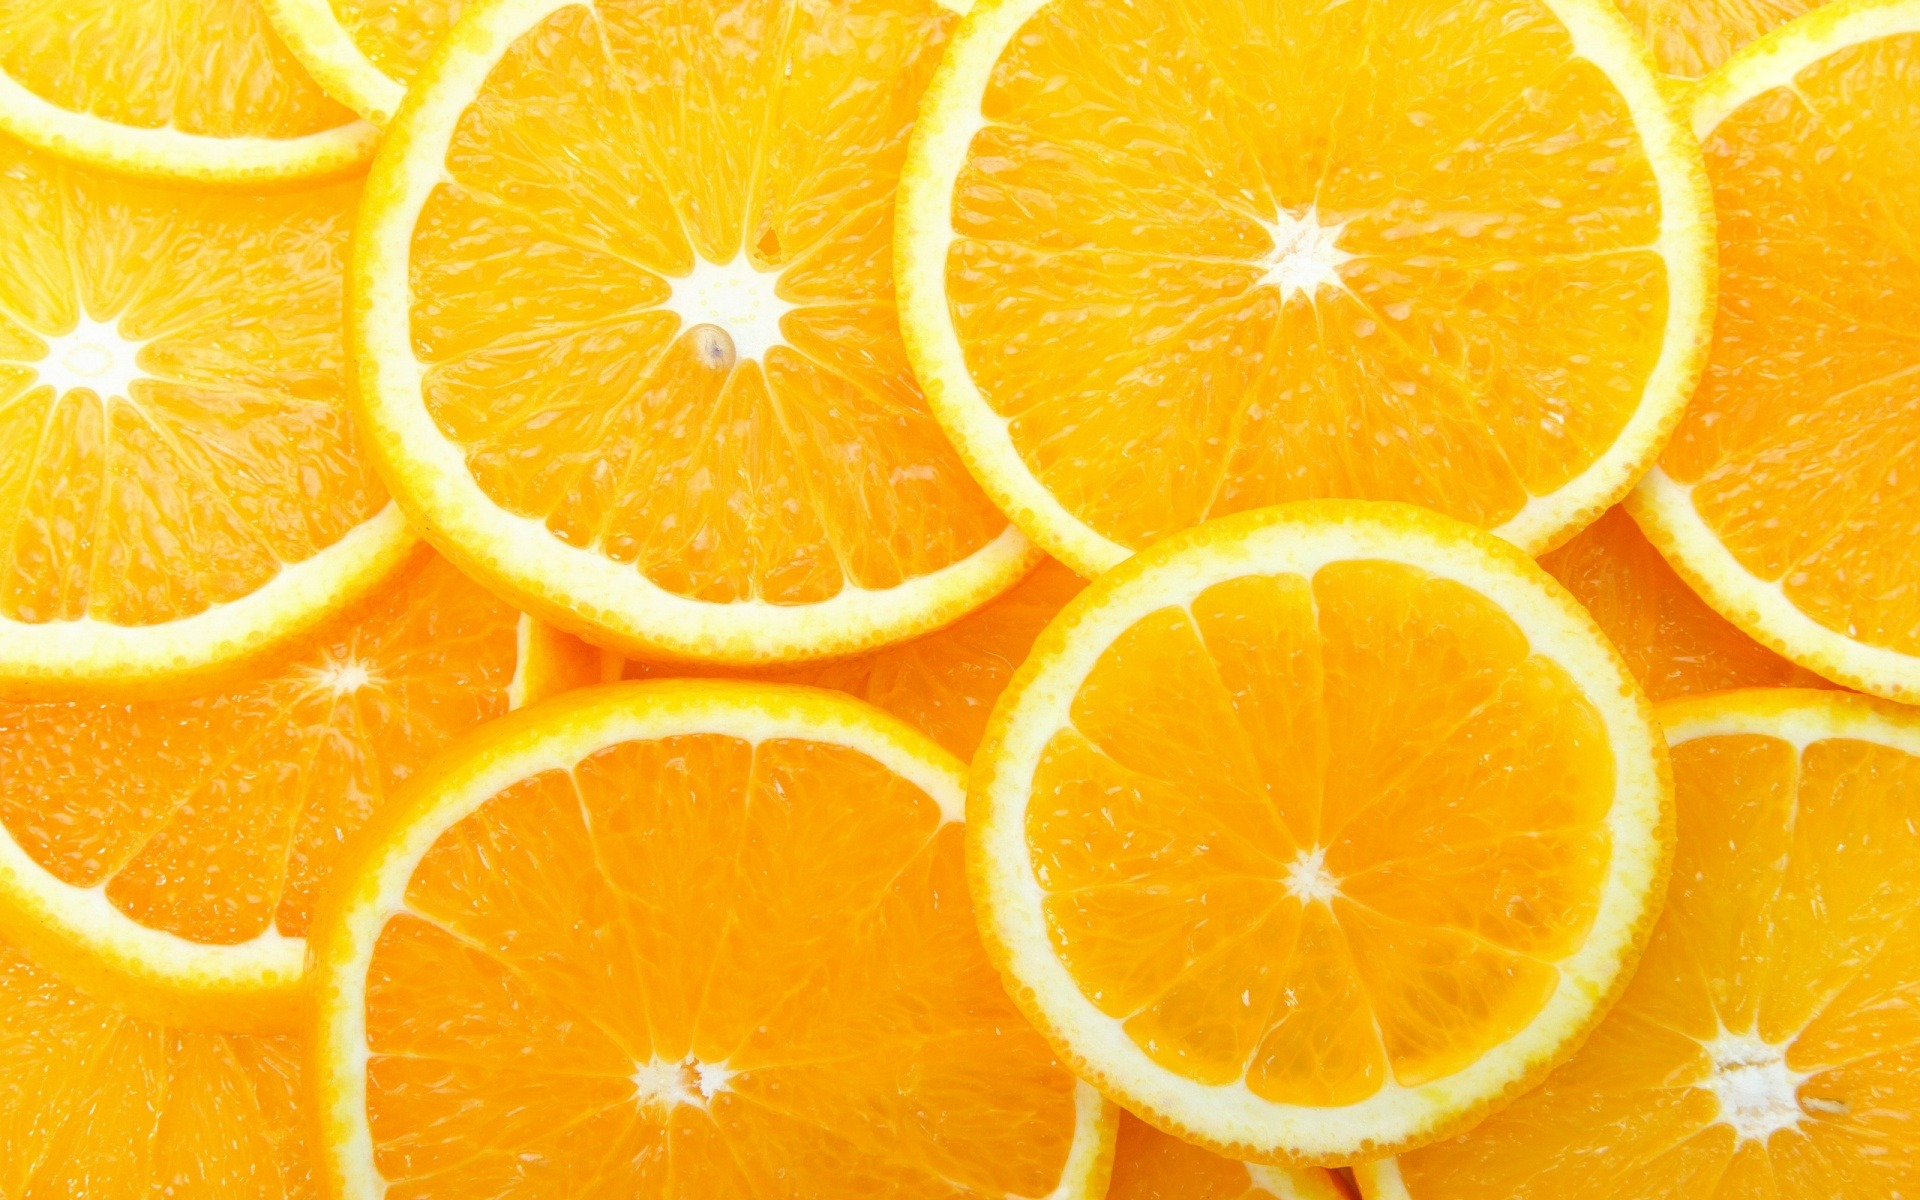 Orange Slices Wallpaper Fruits Nature Wallpapers in jpg format for 1920x1200